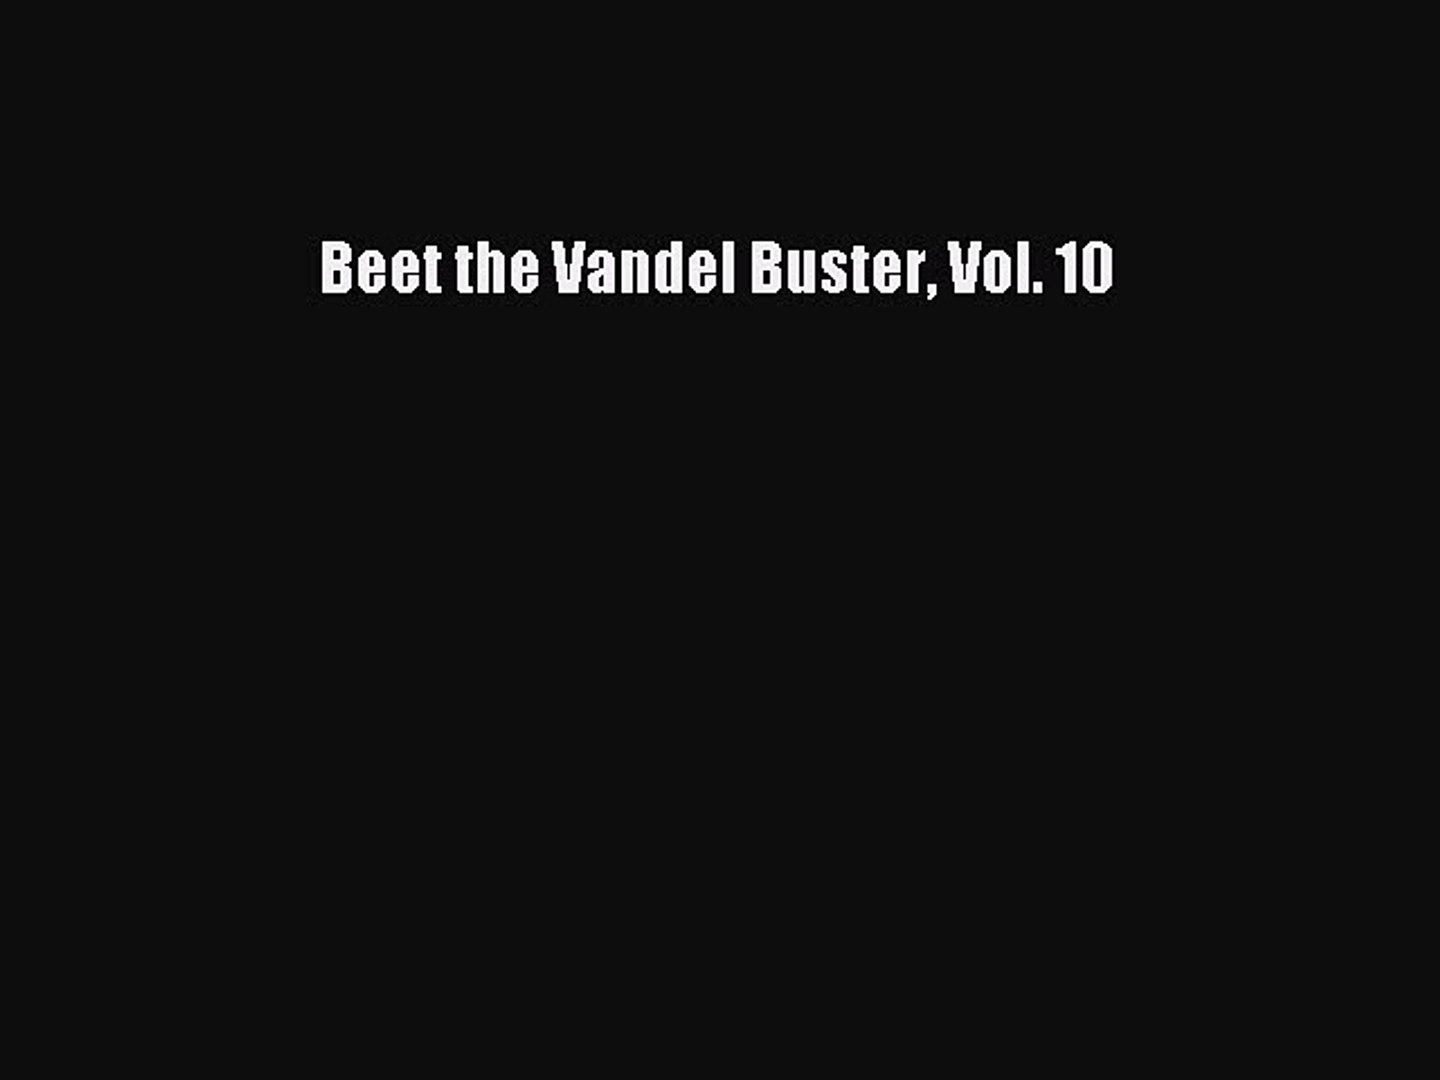 Download Beet the Vandel Buster Vol. 10  EBook